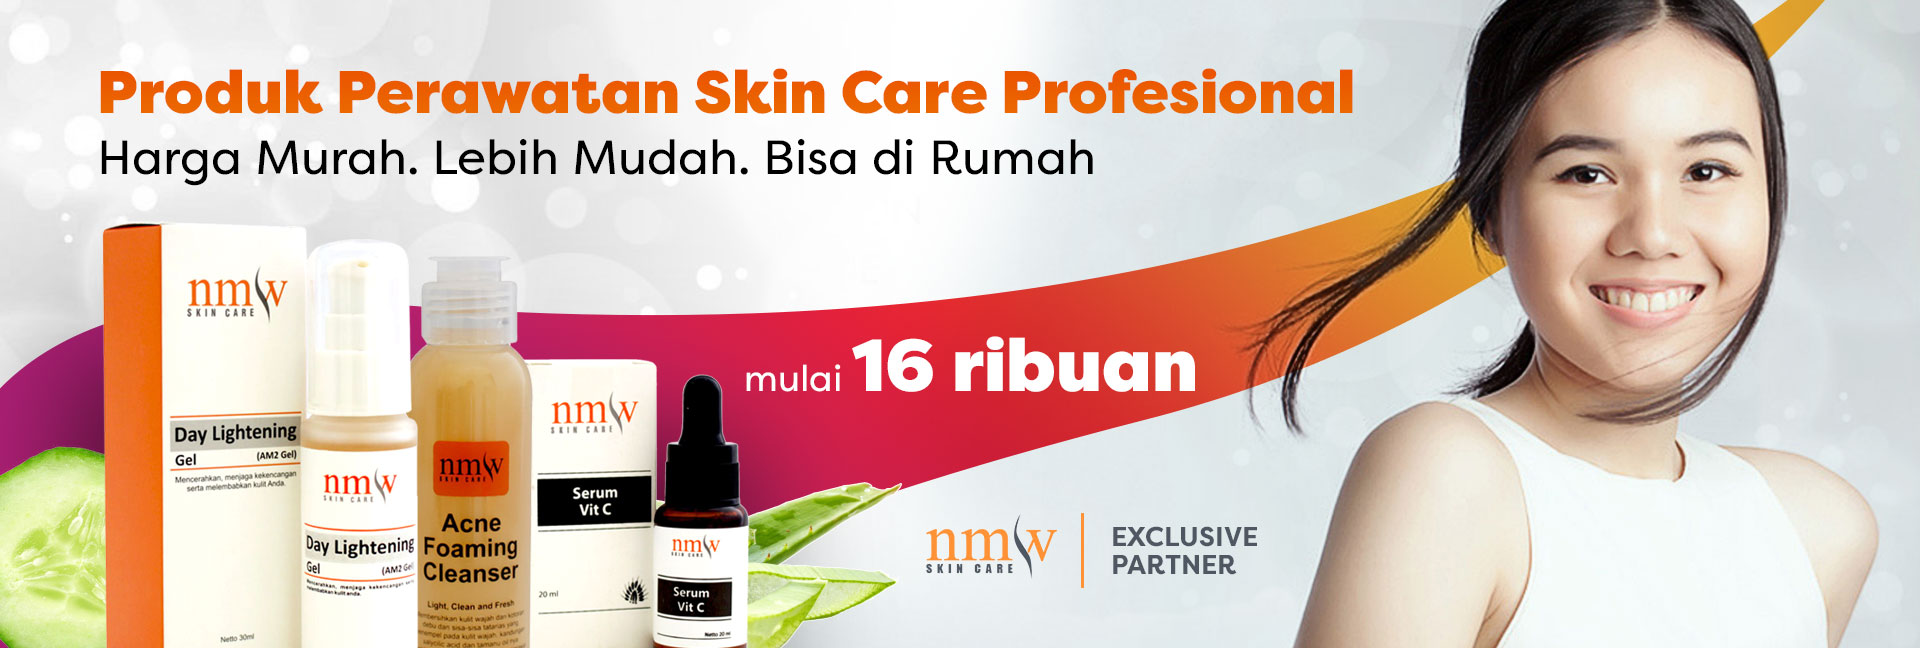 NMW Skin Care Exclusive Partner